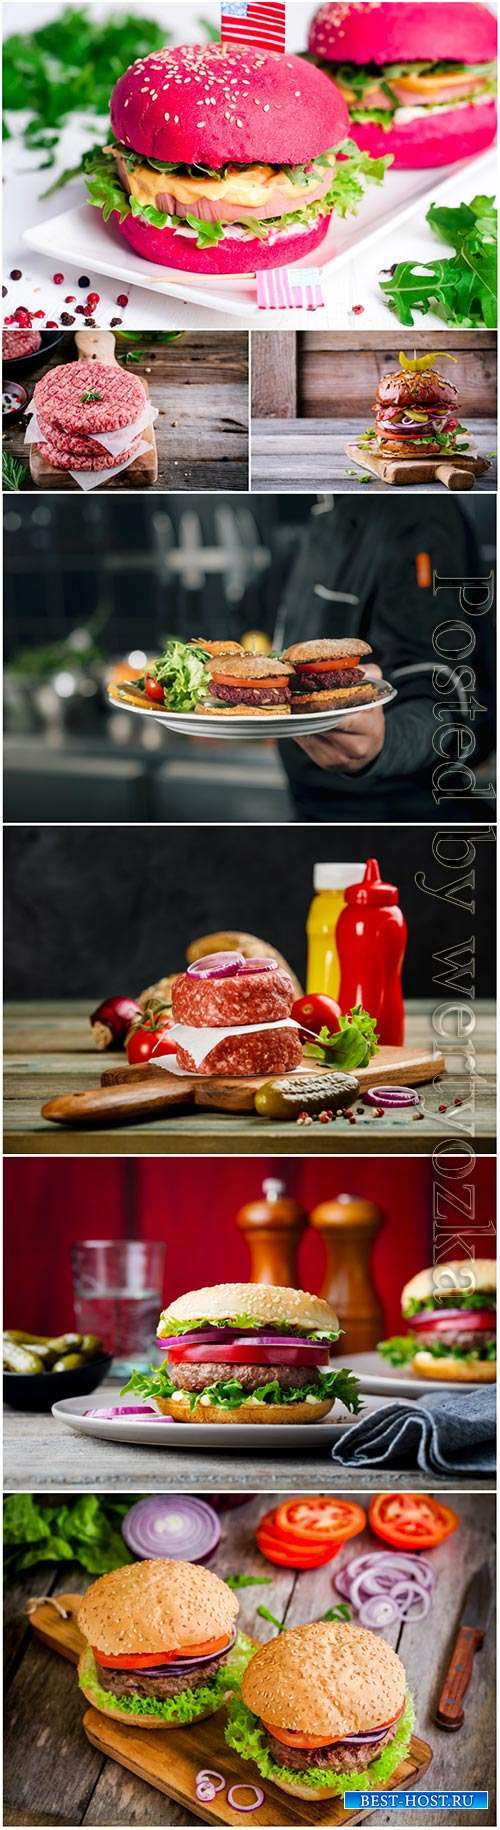 Burgers with fresh vegetables stock photo